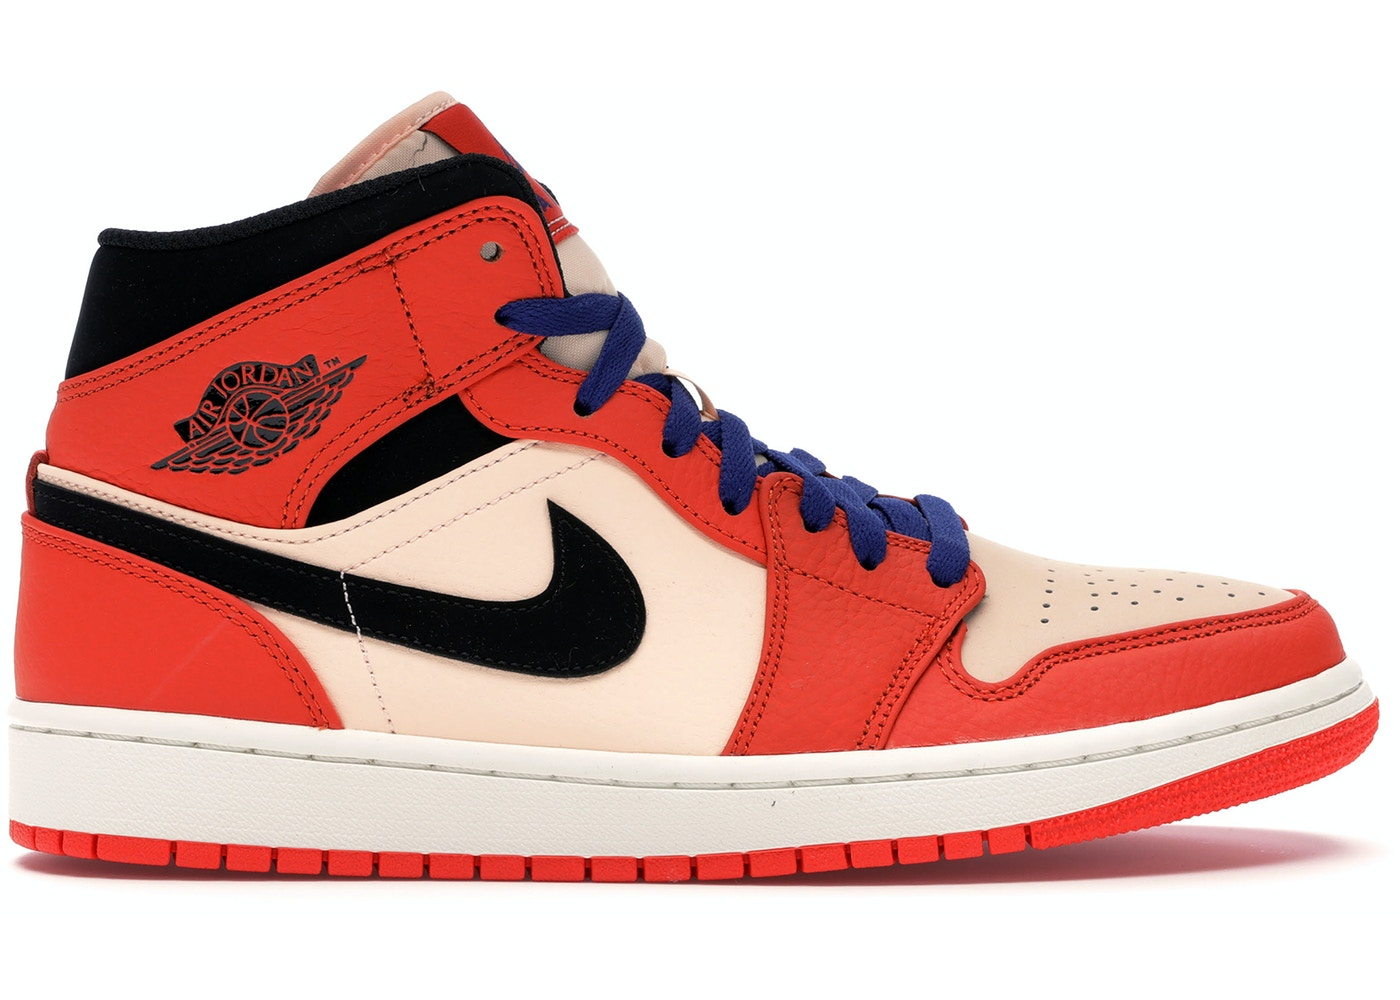 acfe87e3e984 Jordan 1 Mid Team Orange Black - 852542-800